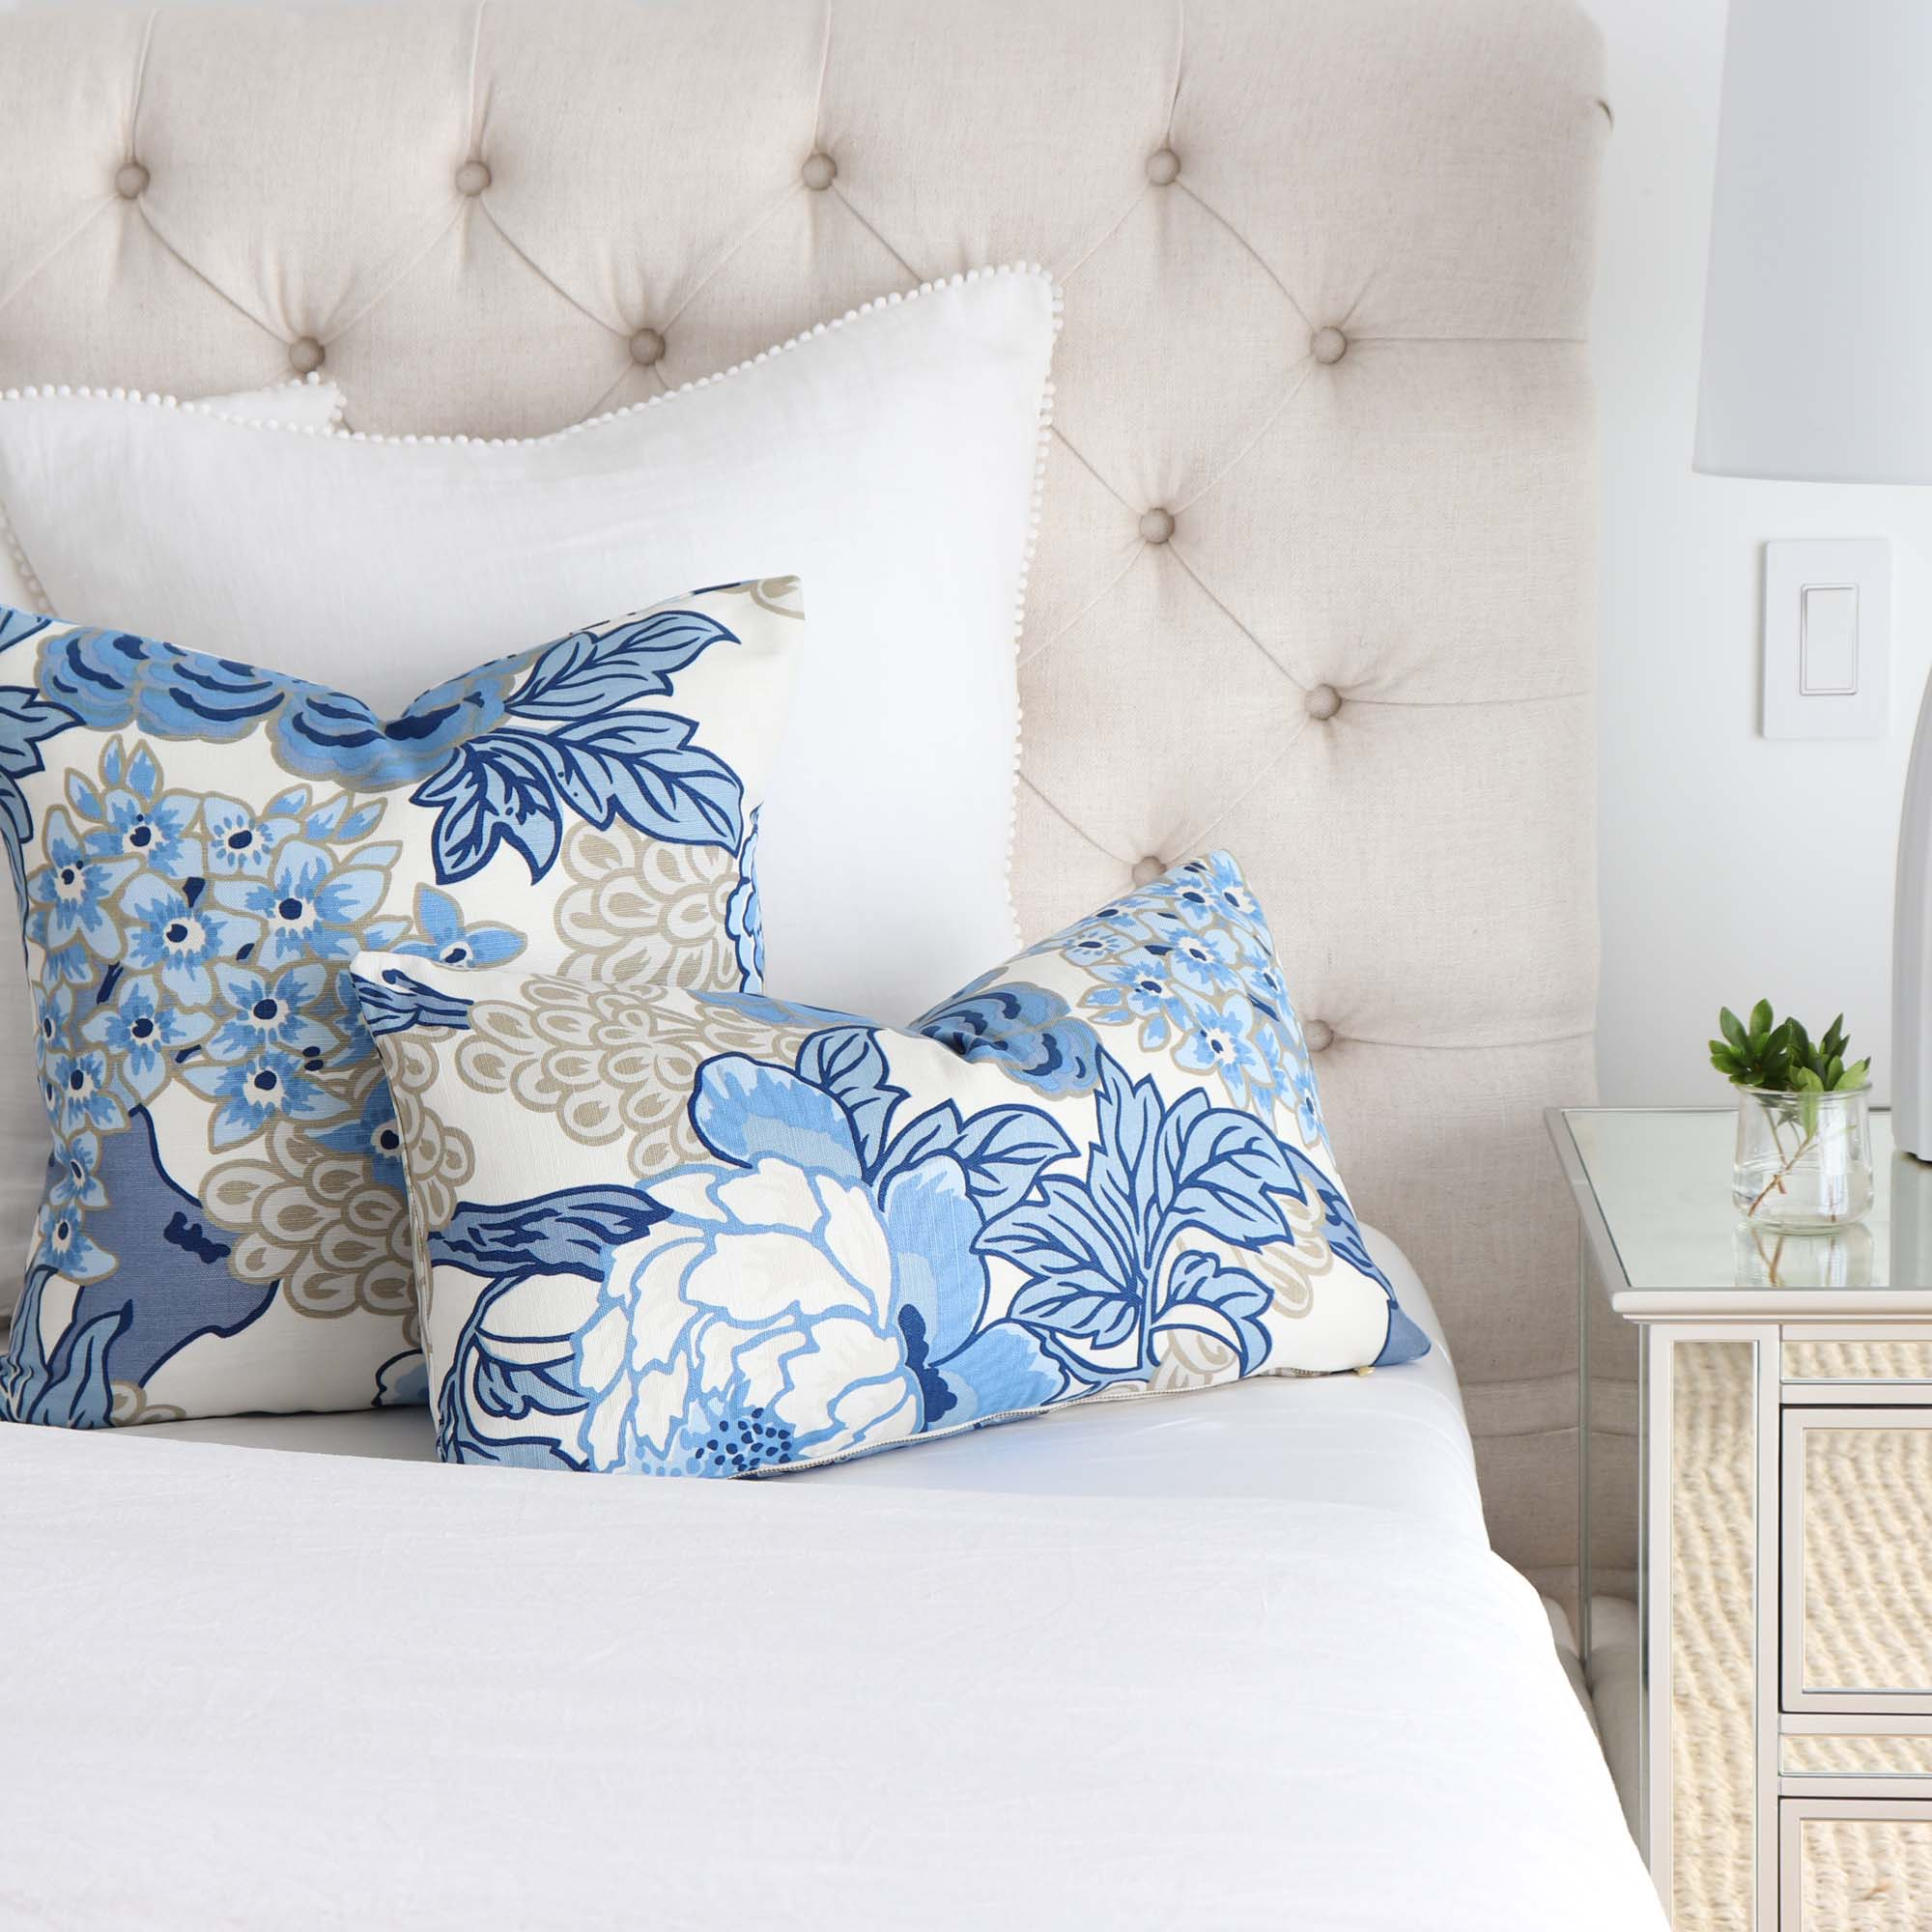 Chloe and Olive Designer Throw Pillow Covers New Arrivals